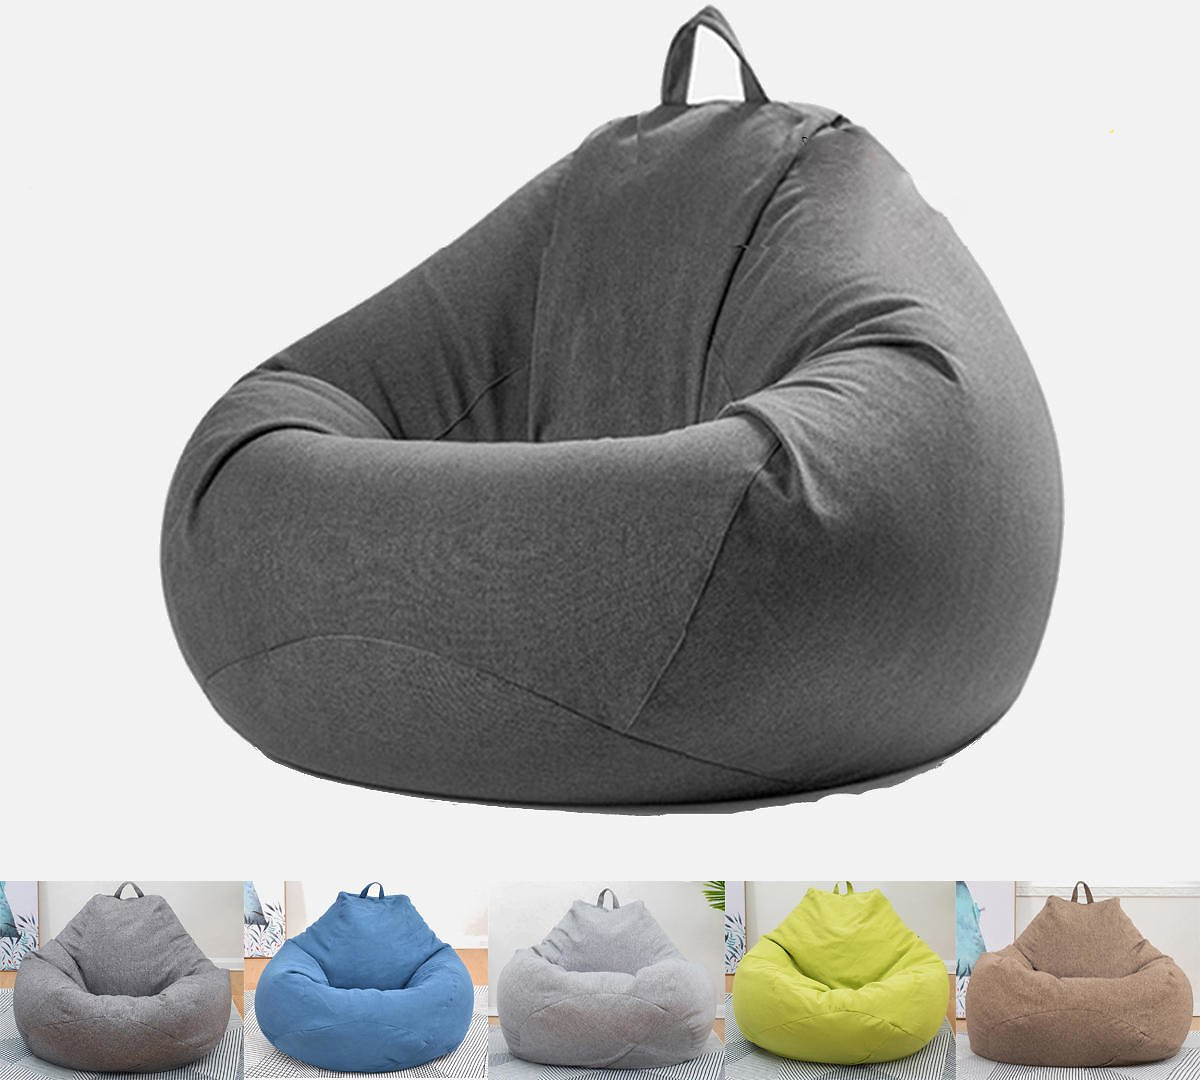 Extra Large Bean Bag Chair Lazy Sofa Cover Indoor Outdoor Game Seat BeanBag - Dark Grey